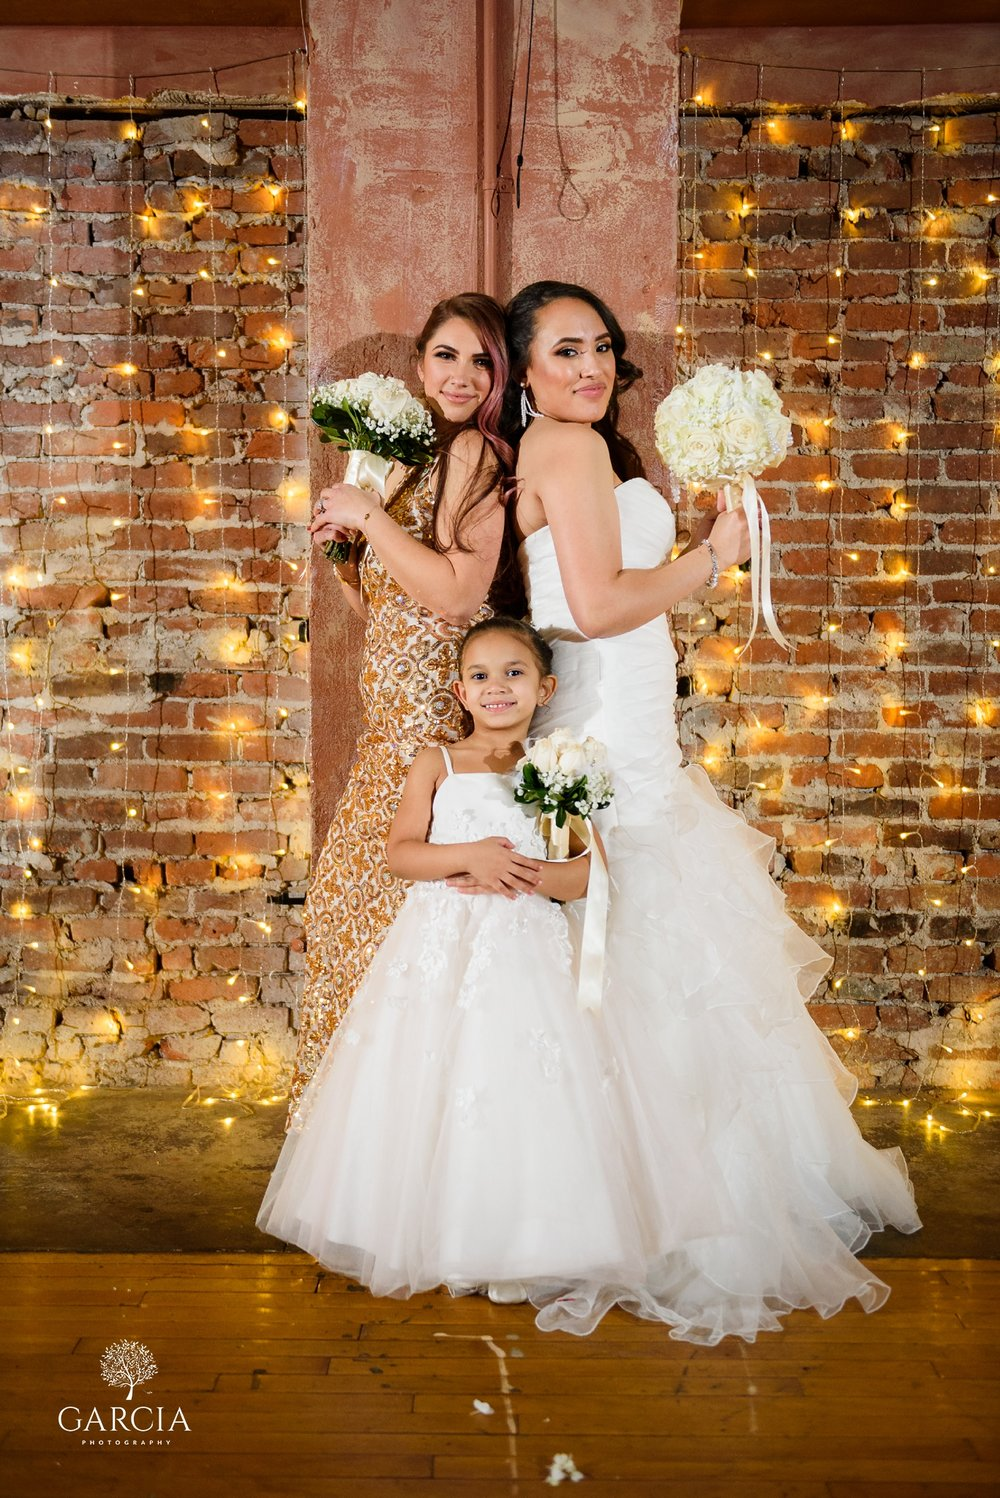 Emily-Junior-Wedding-Garcia-Photography-4296.jpg